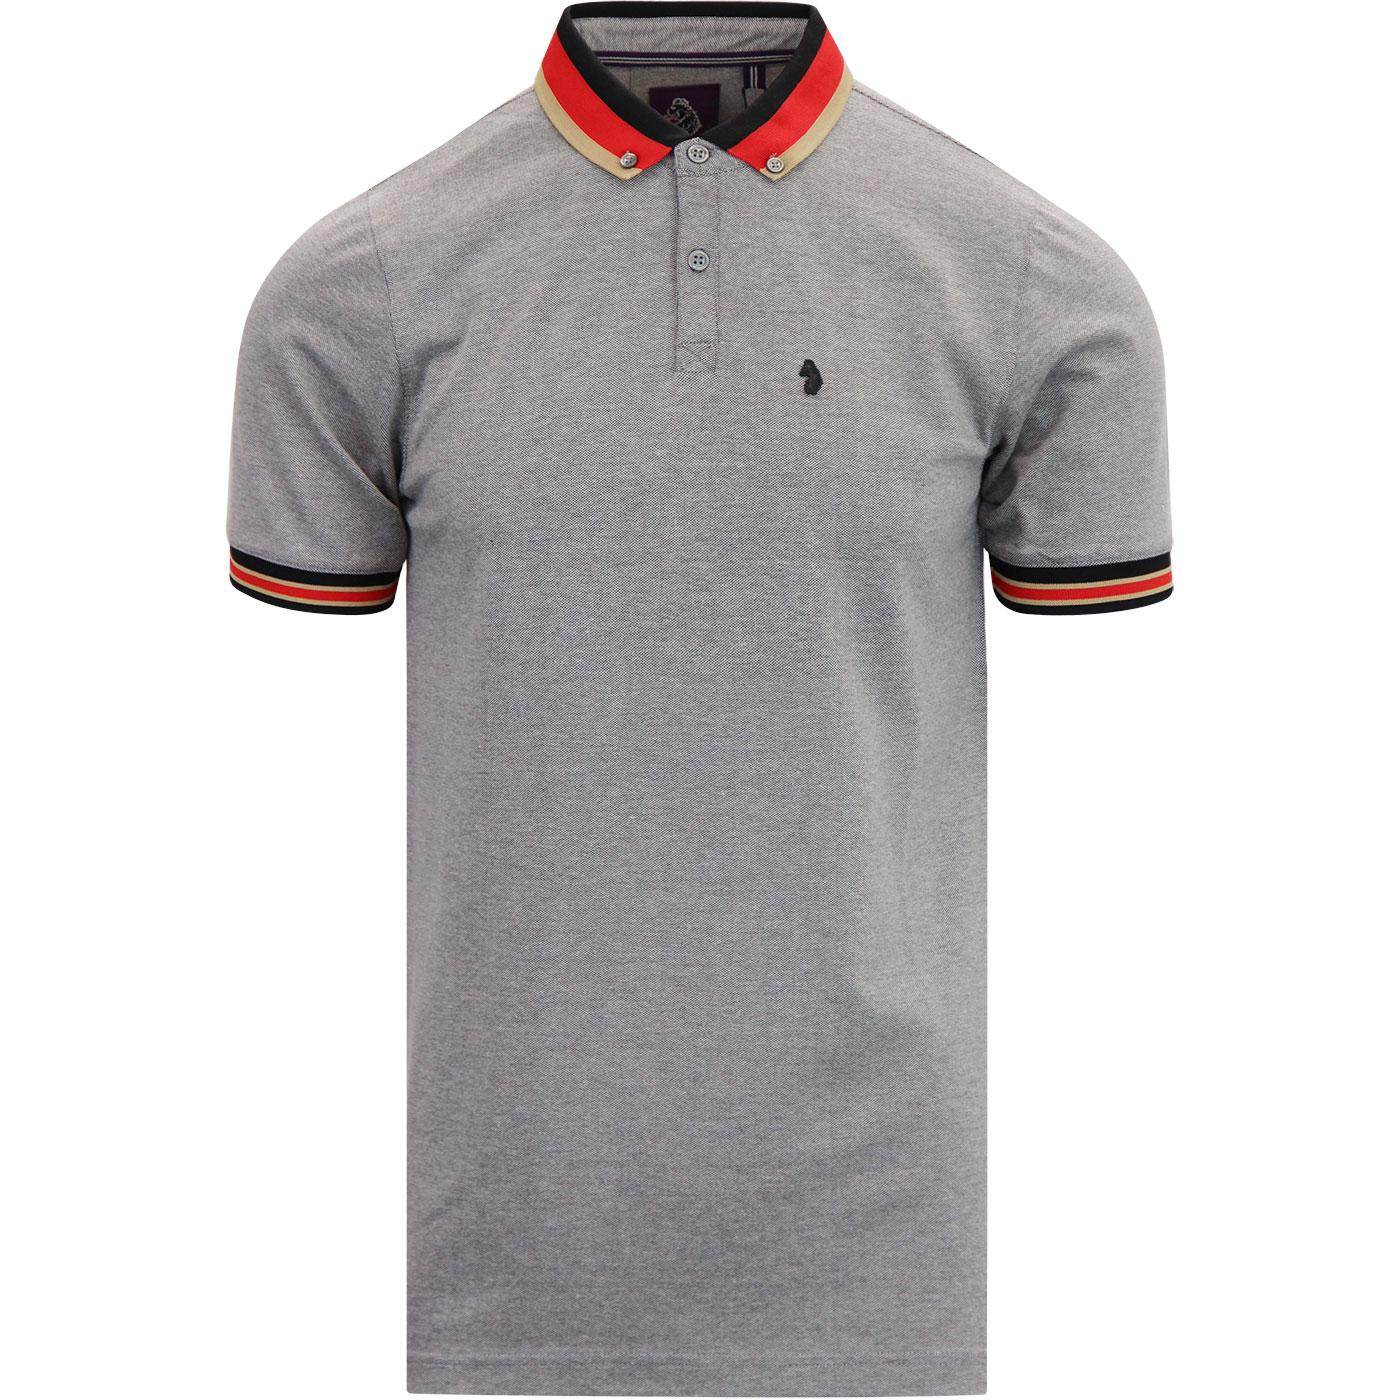 Percyville LUKE 1977 Stripe Collar Mod Polo SILVER